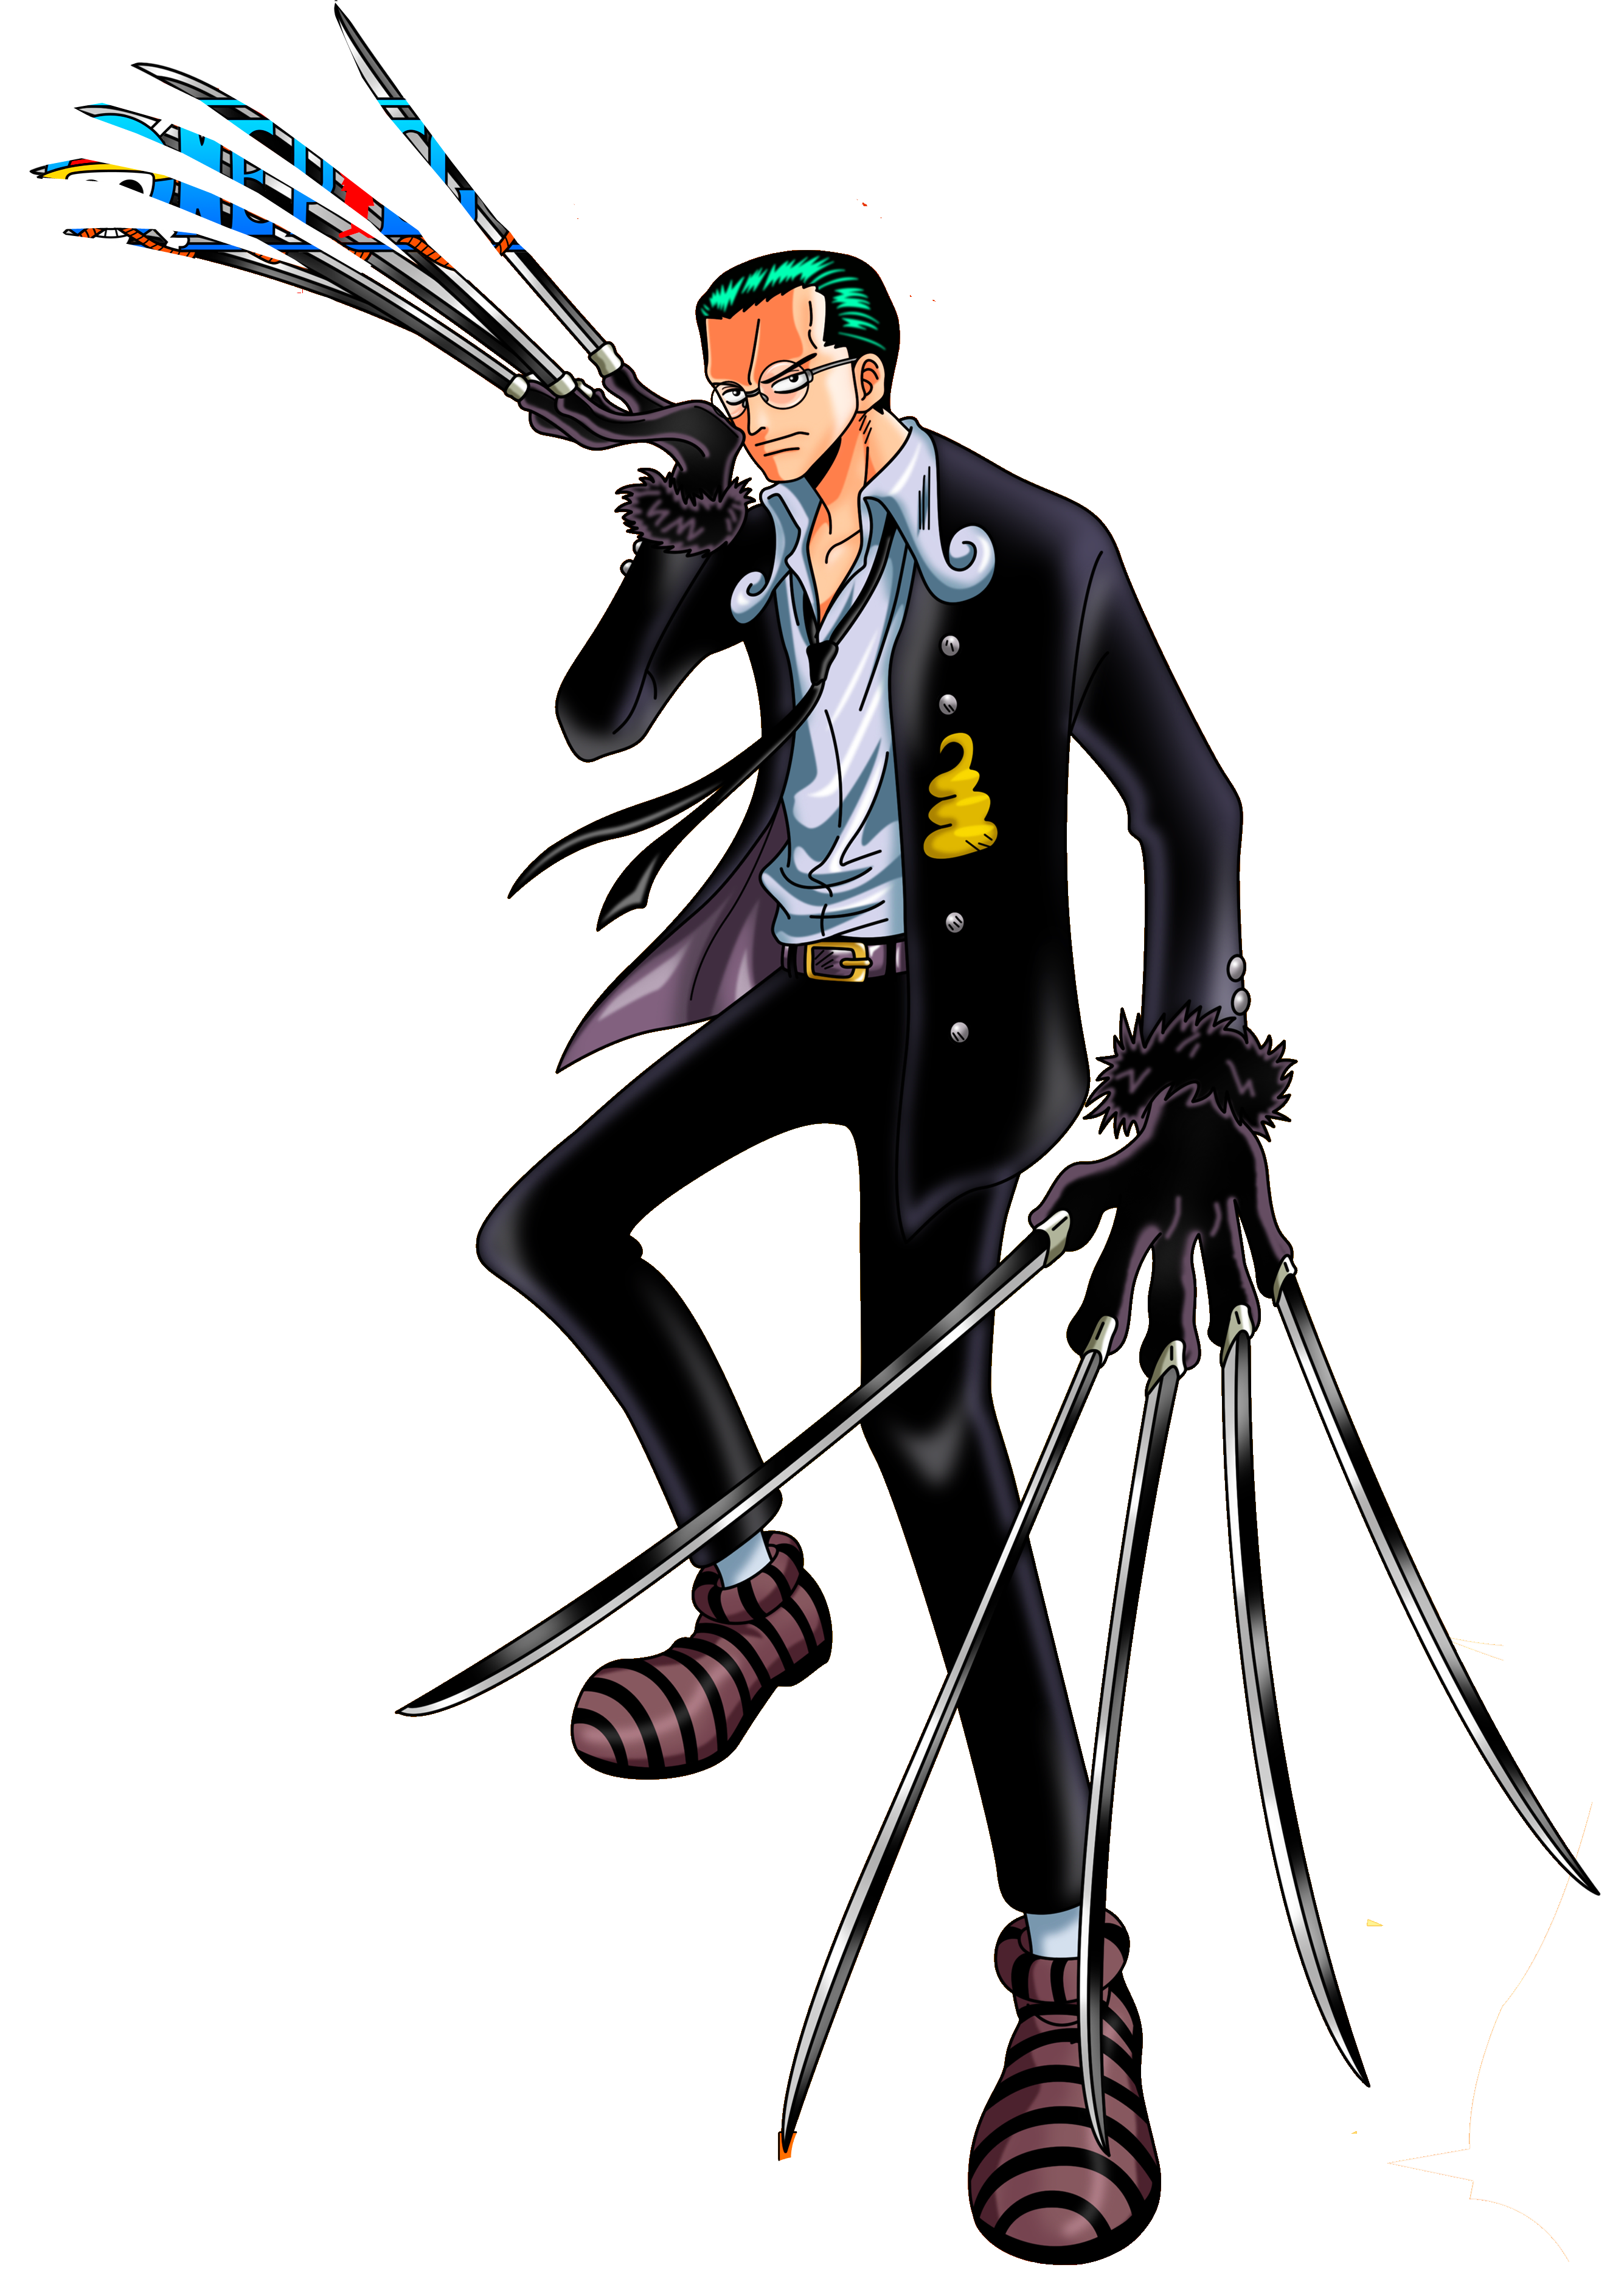 kuro_by_alexiscabo1-d9285dc.png